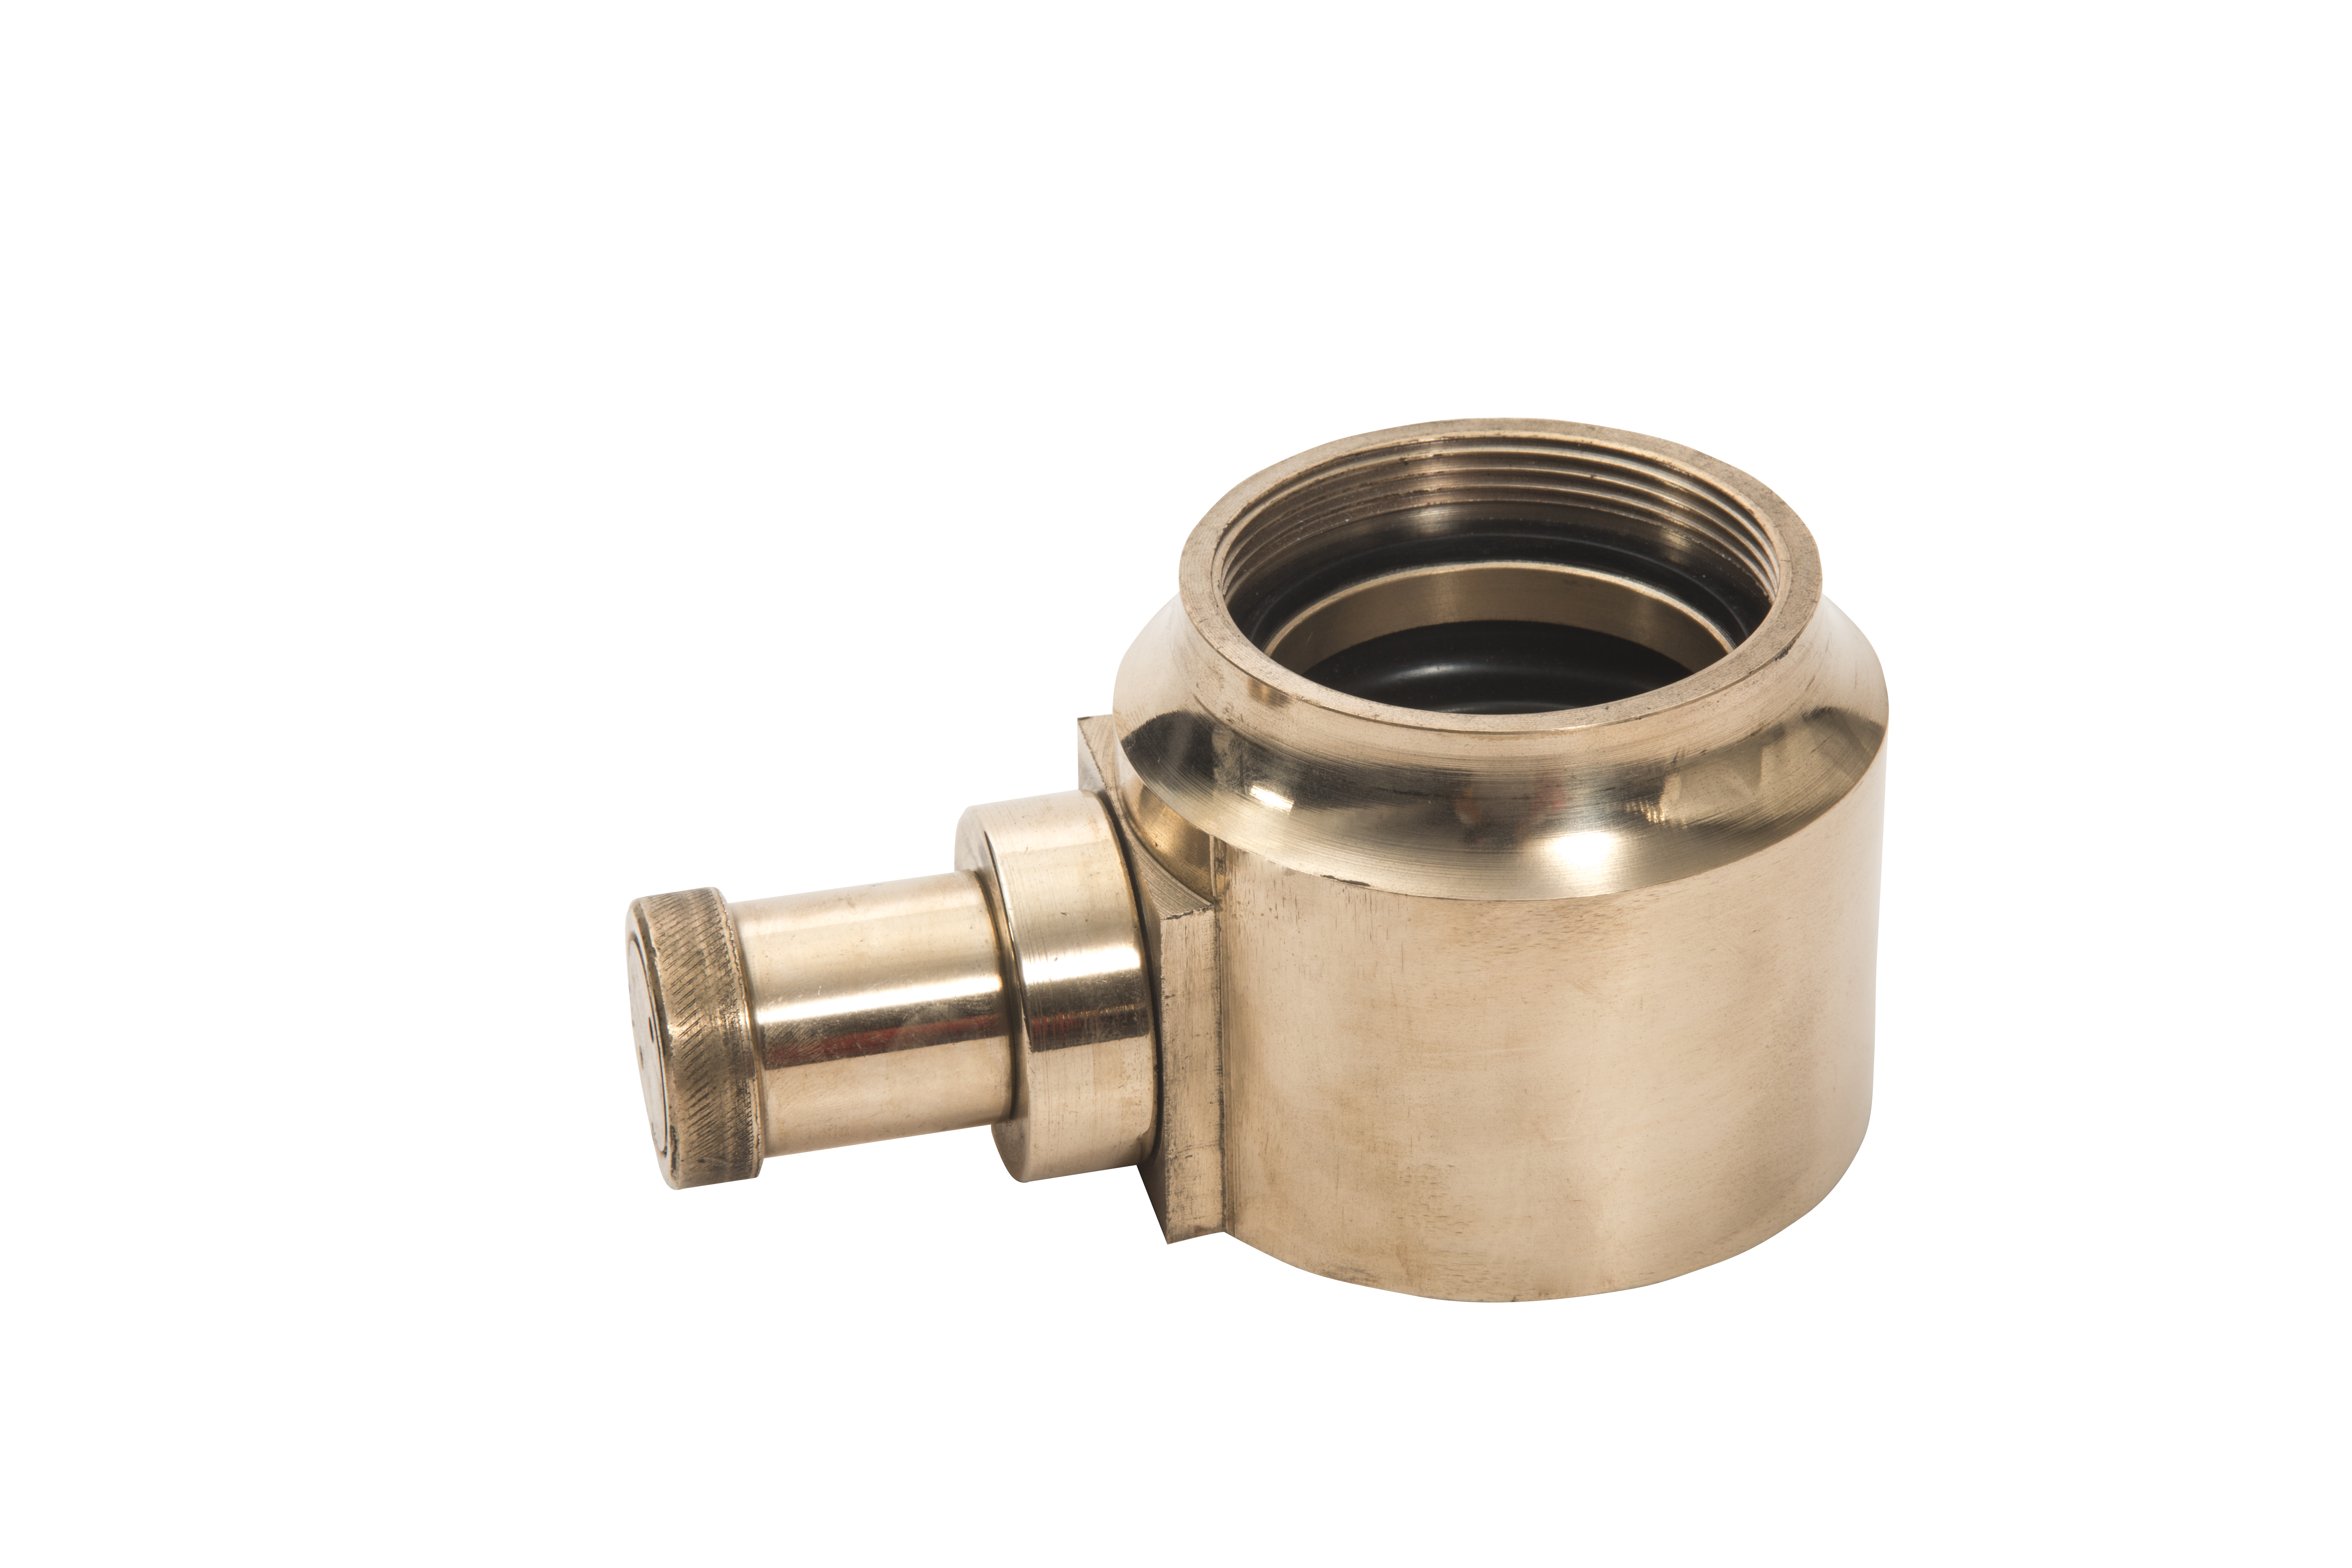 FEMALE COUPLING ASSEMBLY